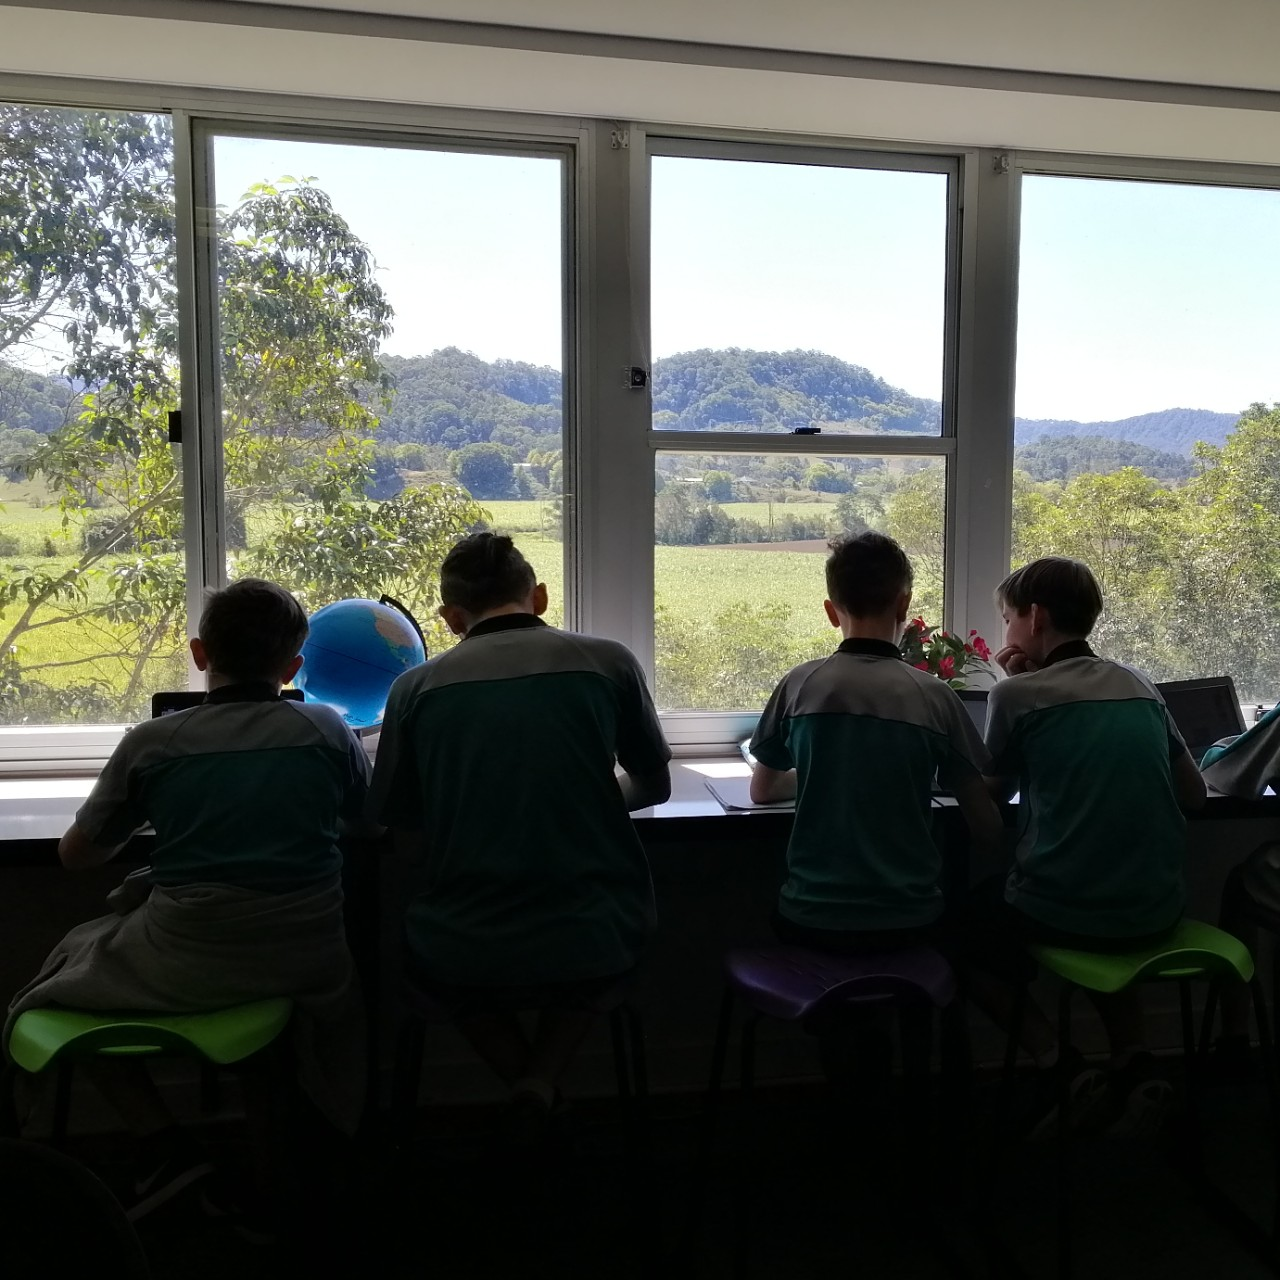 The view from the library